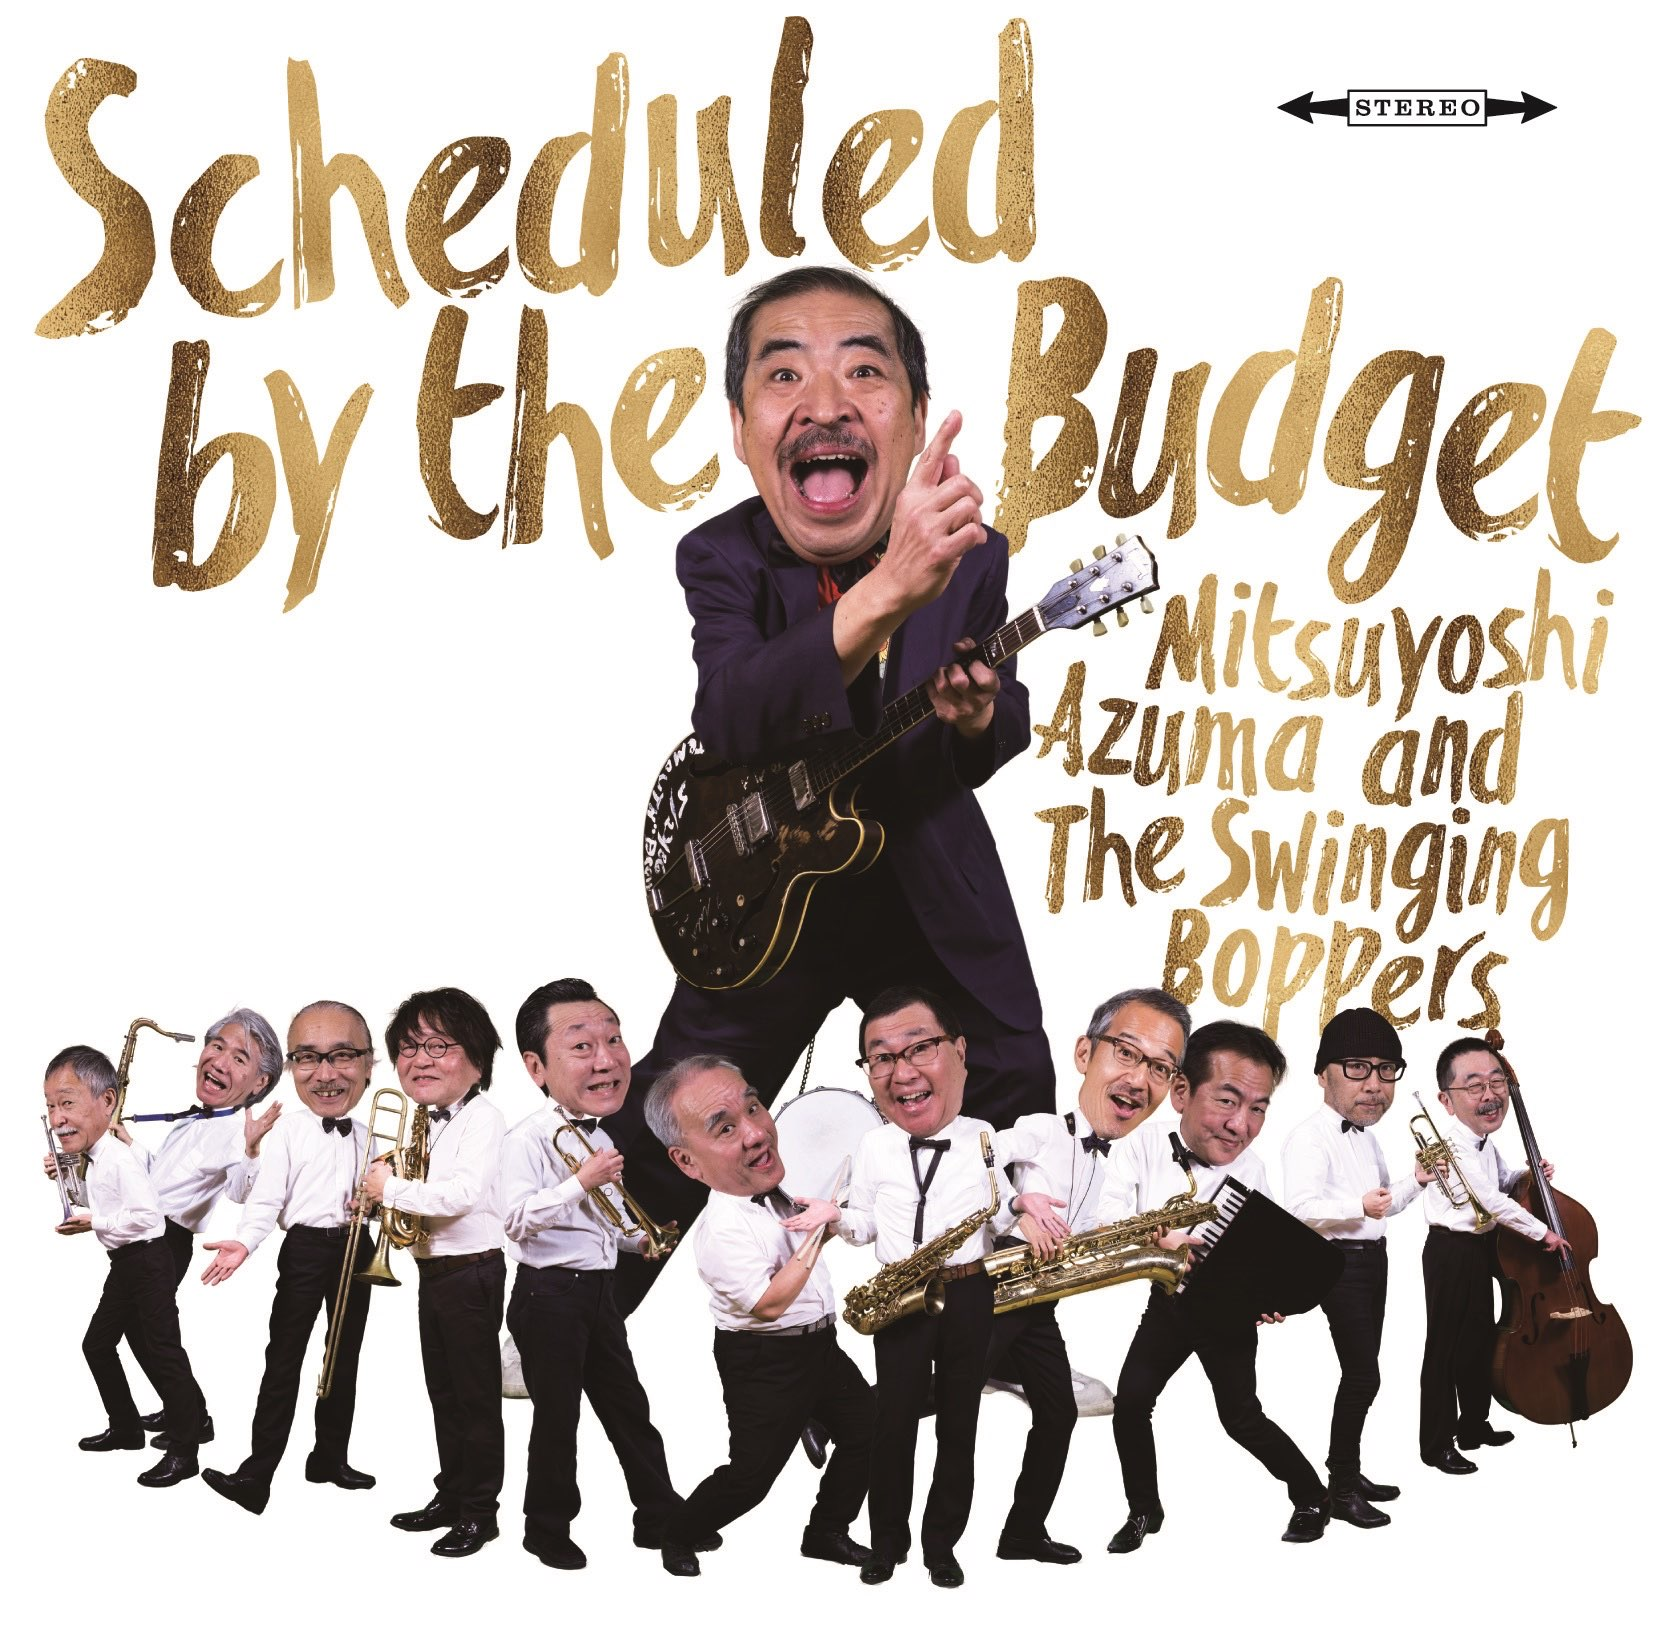 吾妻光良&The Swinging Boppers『Scheduled by the Budget』